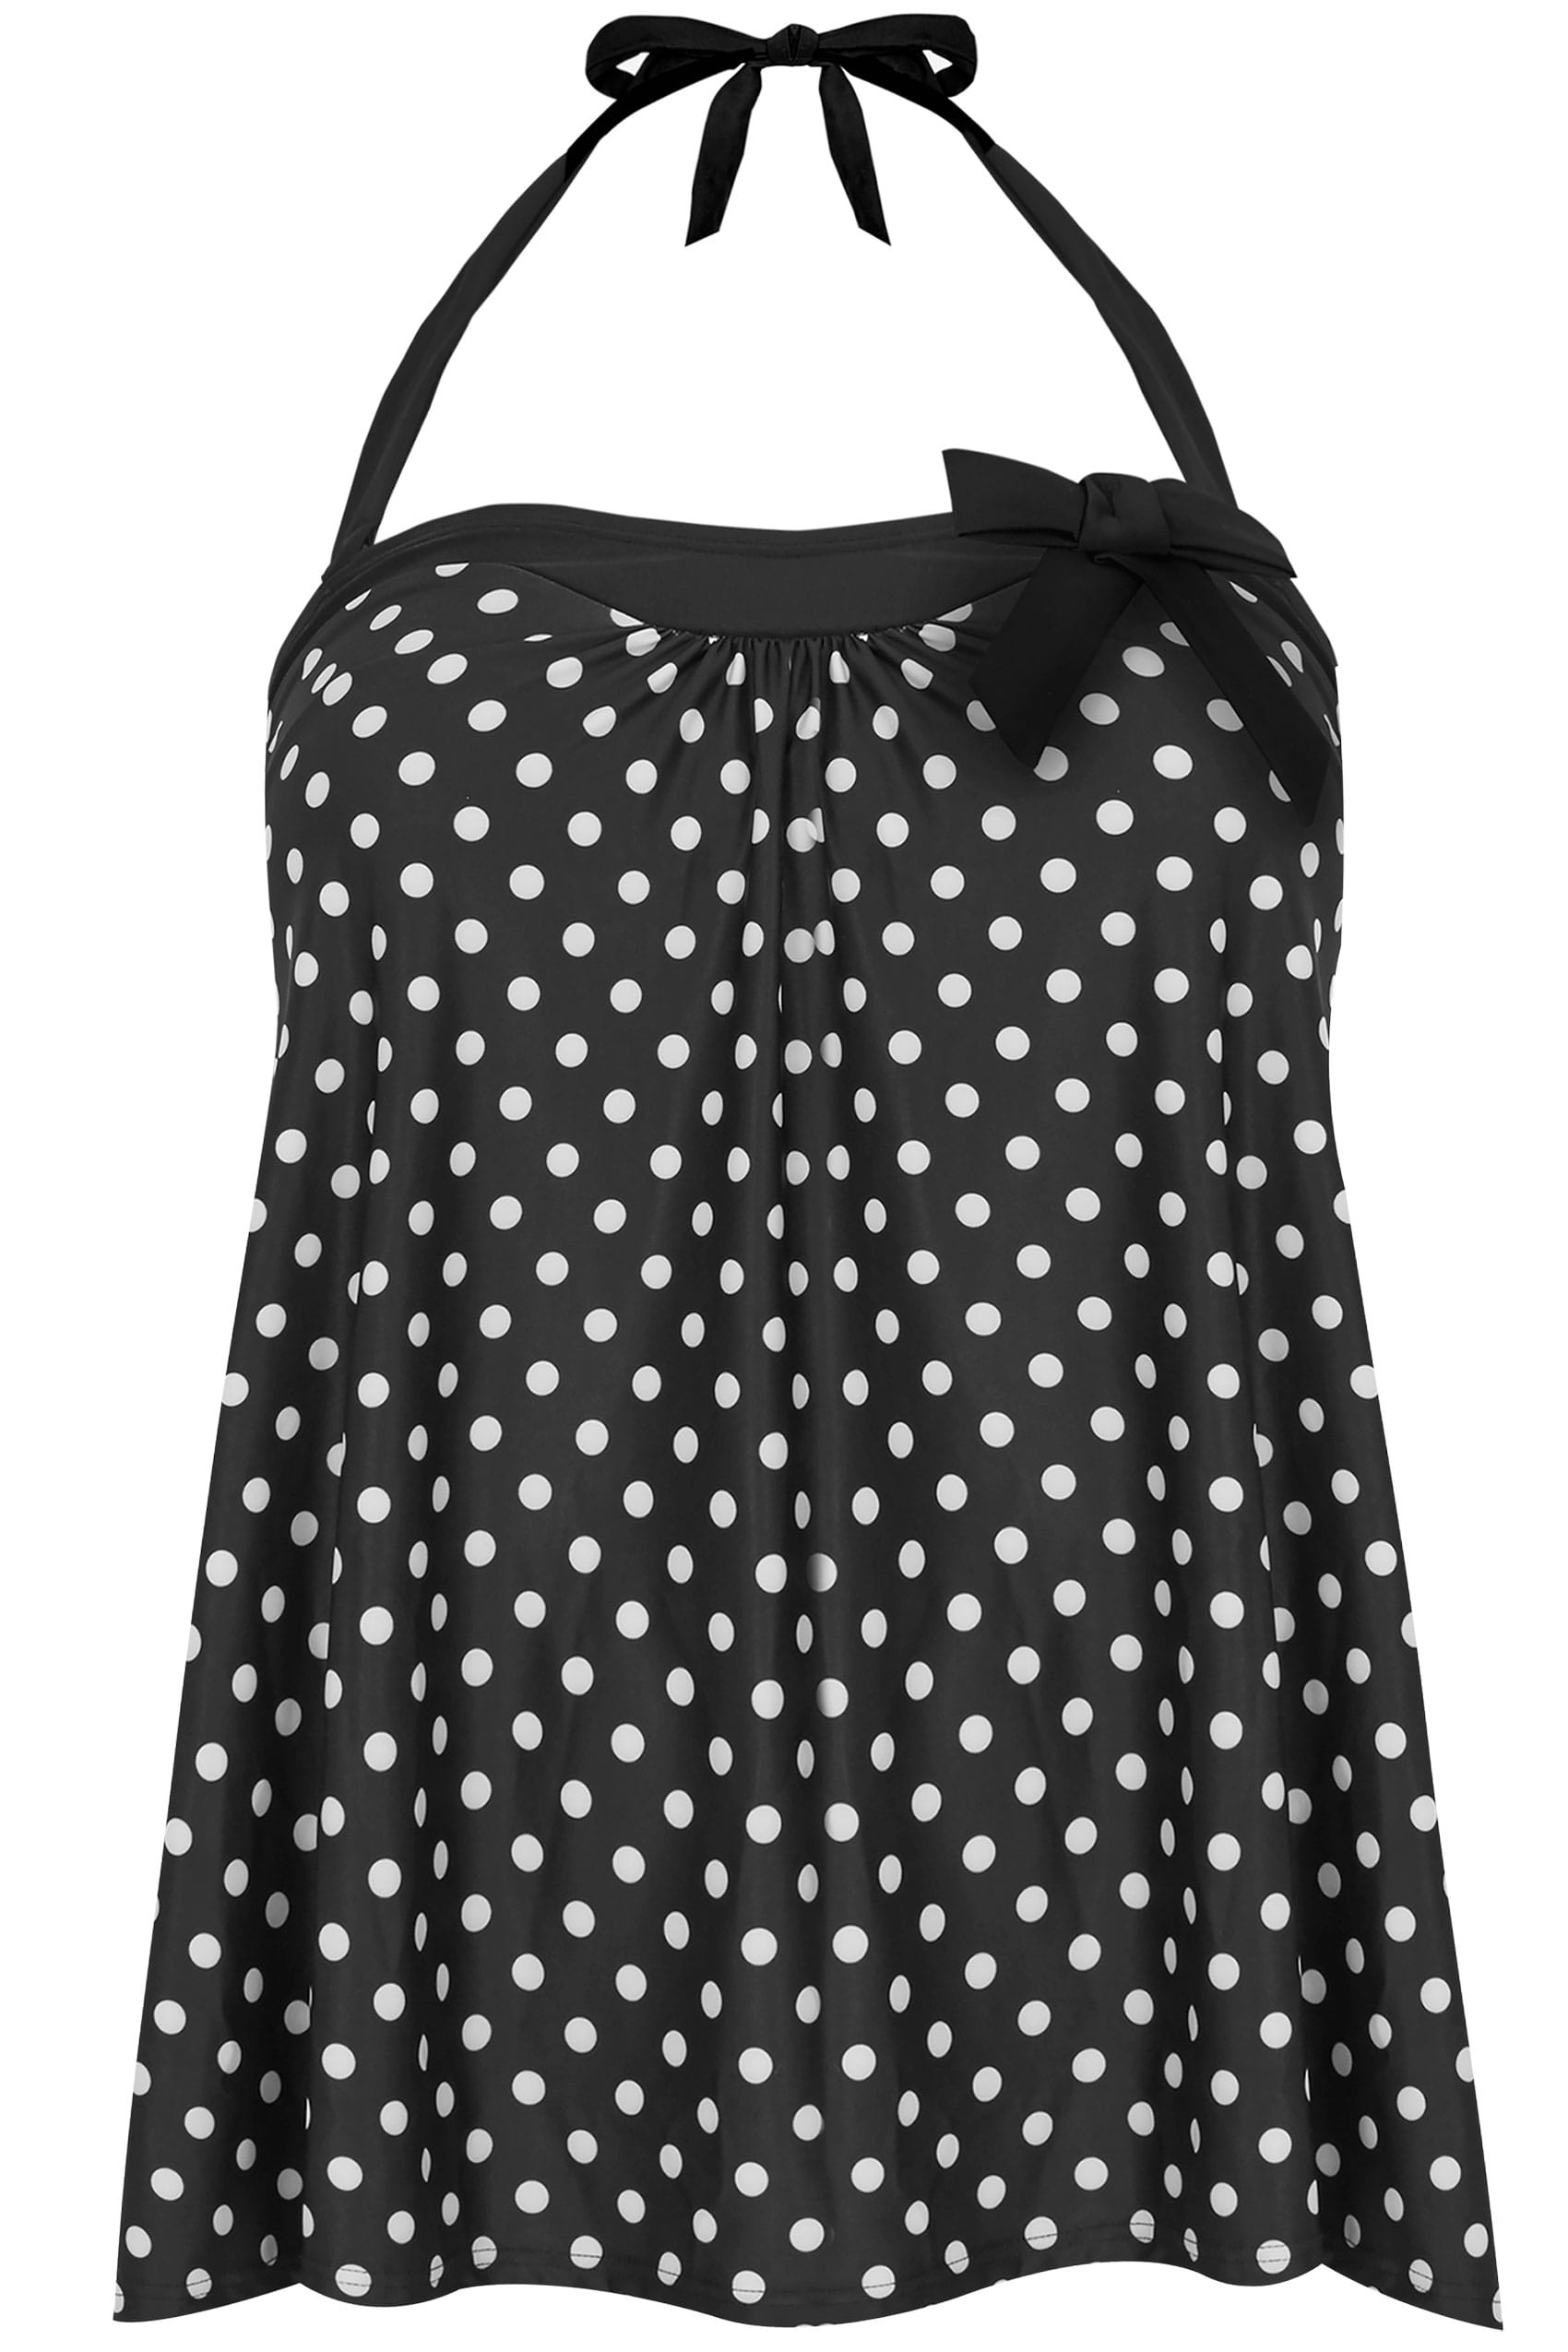 black white polka dot print tankini top plus size 16 to 36. Black Bedroom Furniture Sets. Home Design Ideas